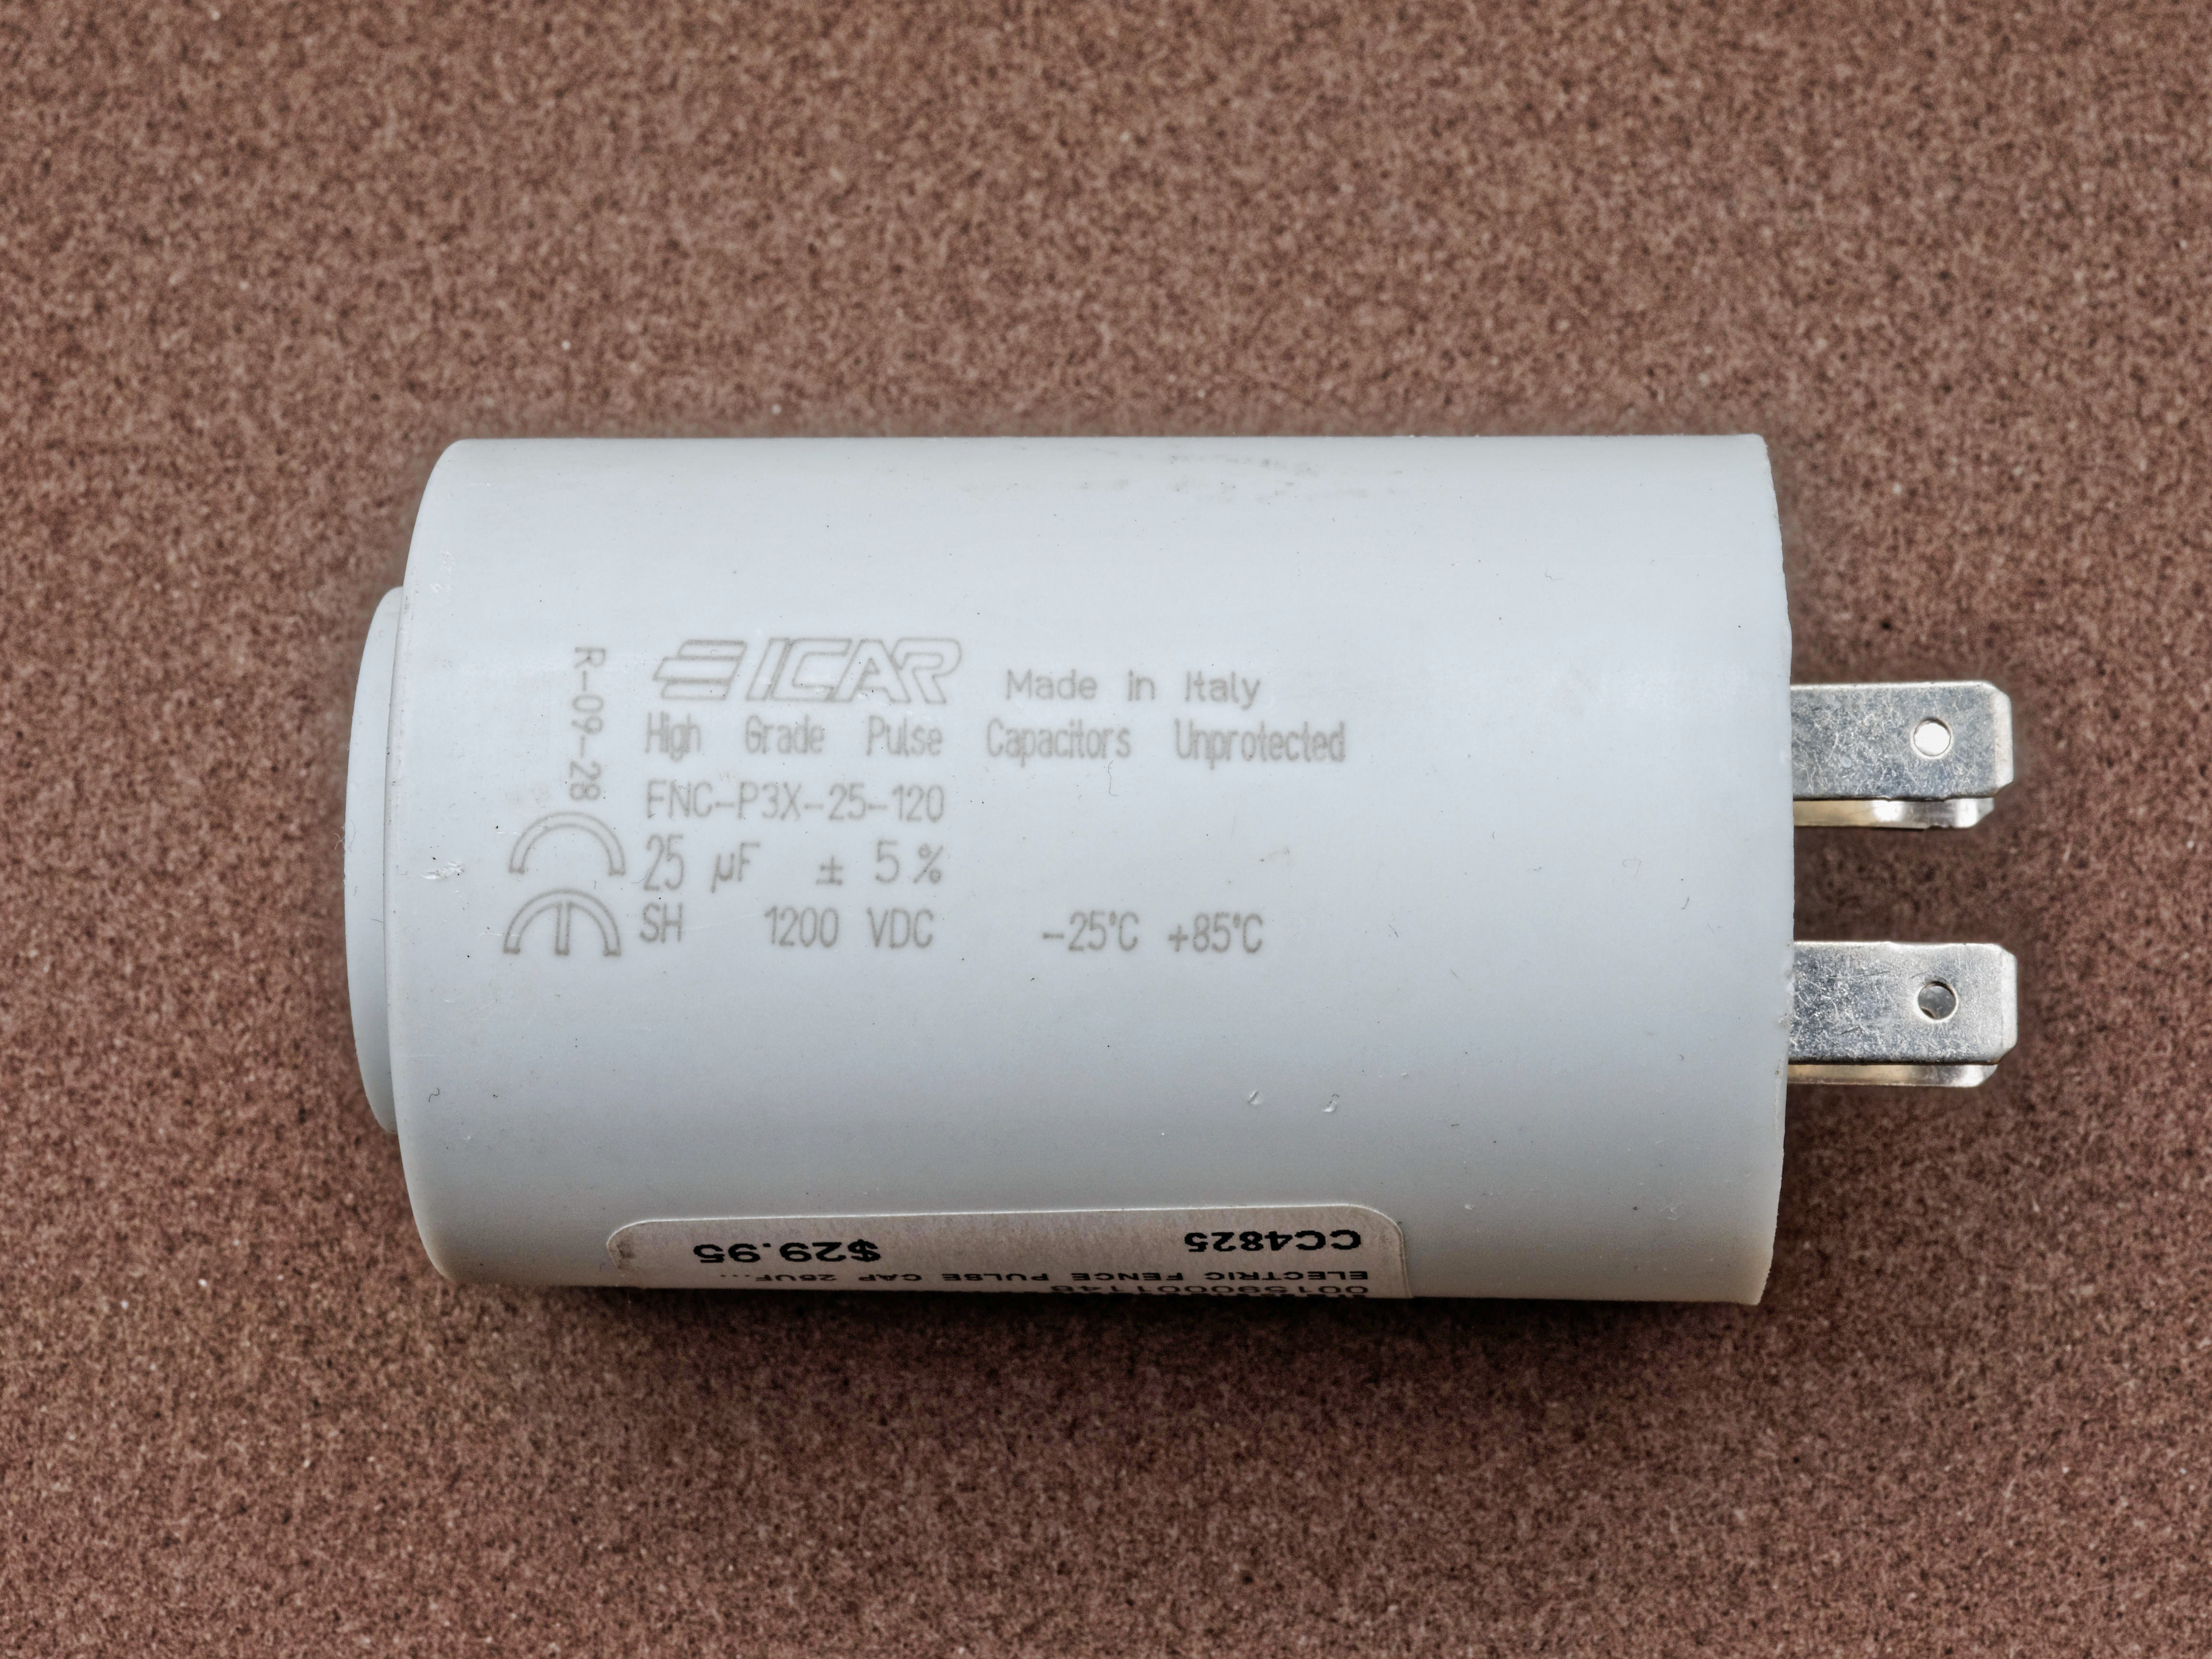 This should be Capacitor-2.jpeg.  Is it missing?